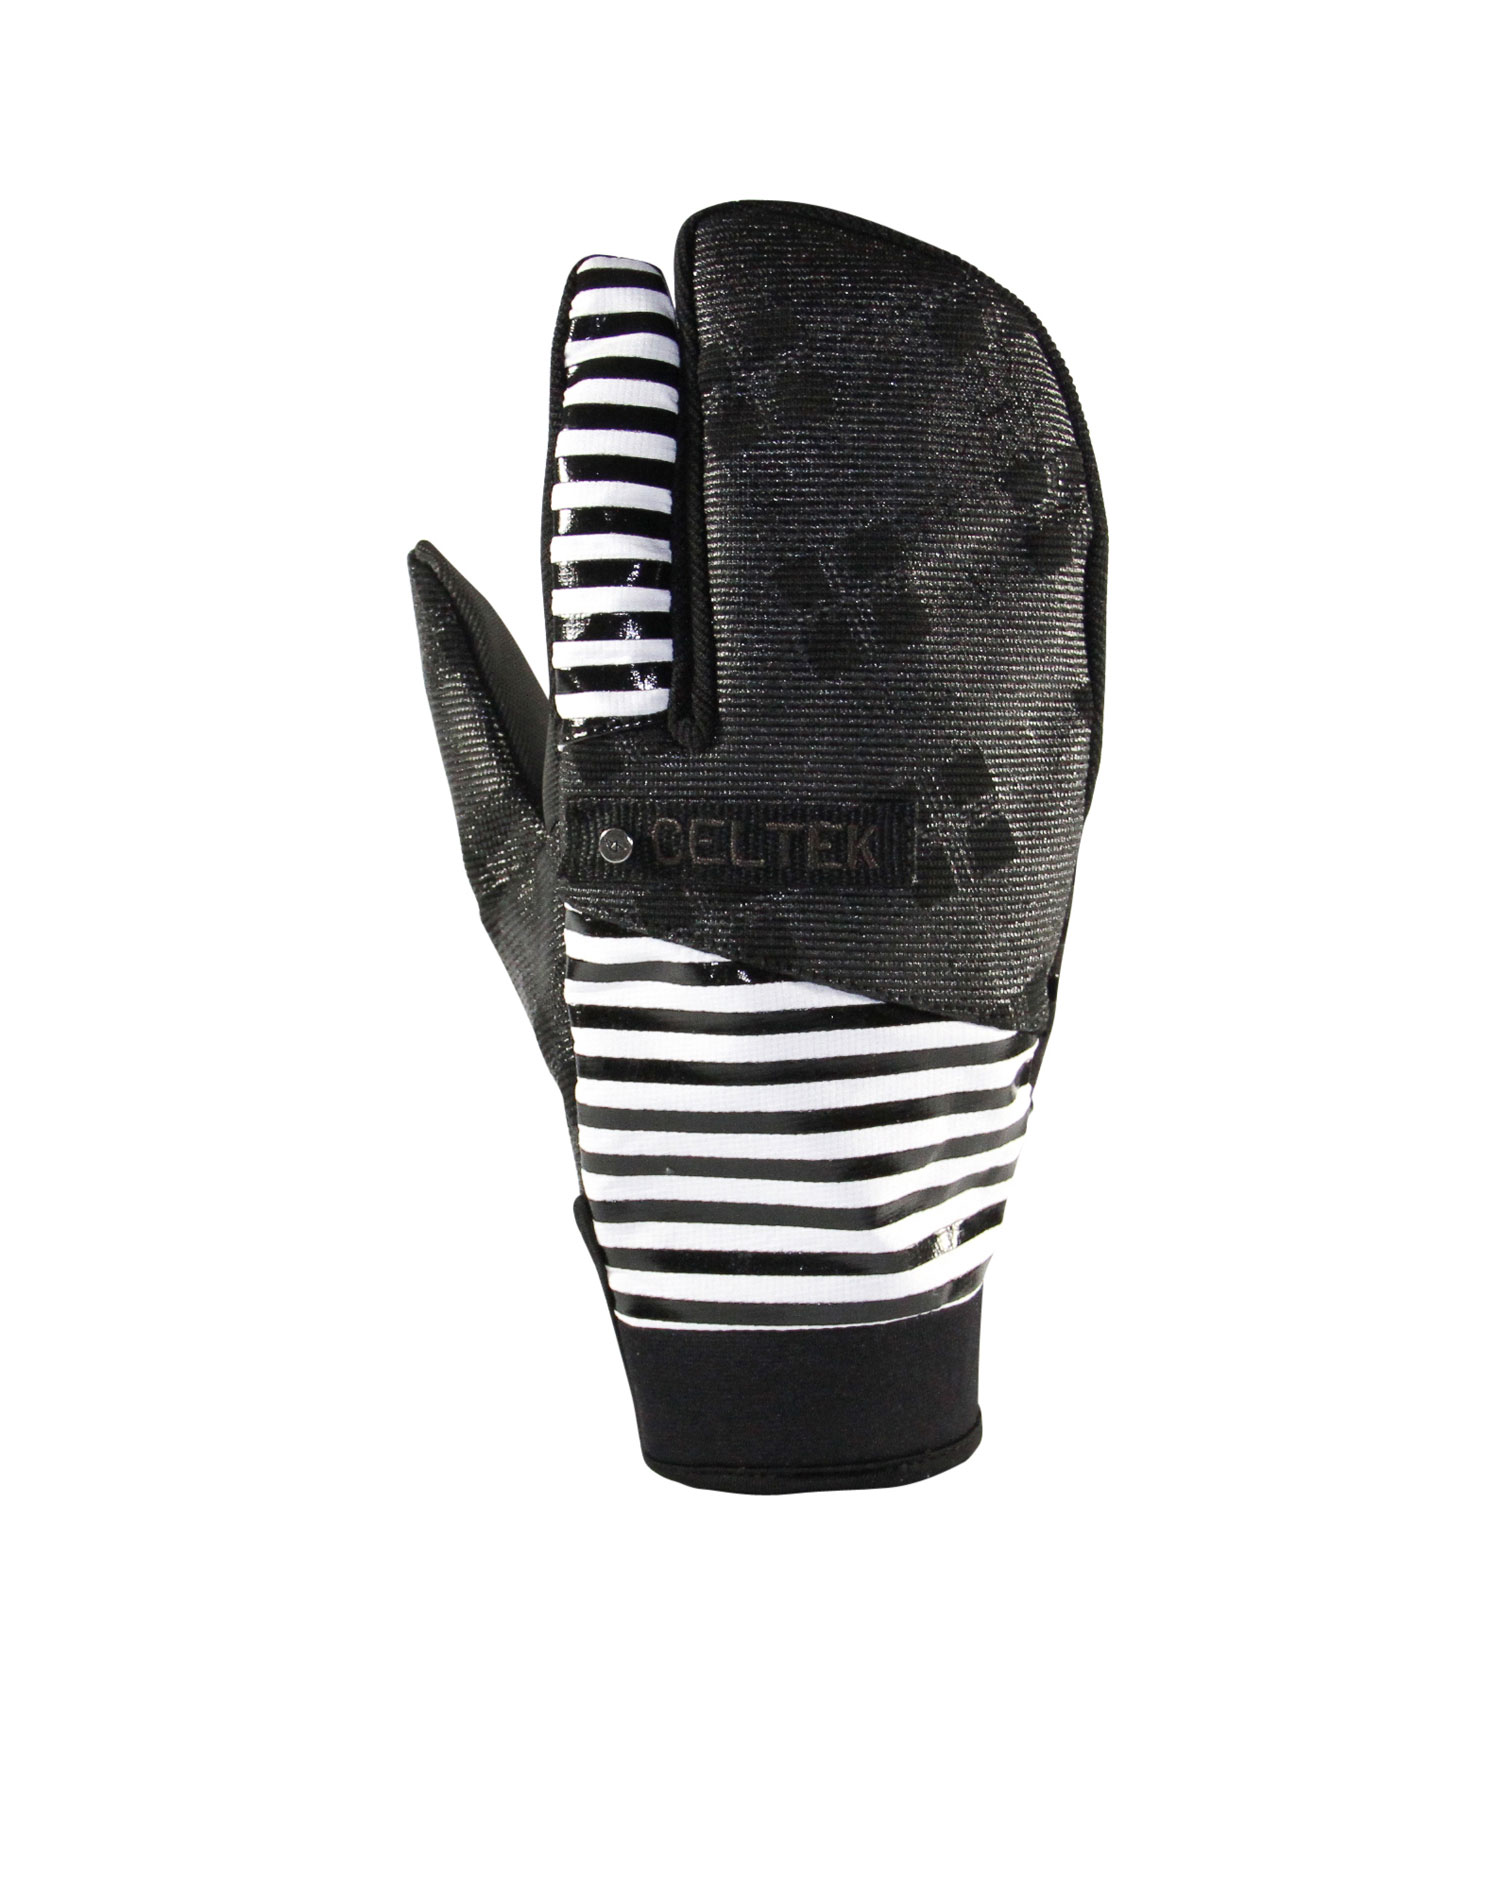 Snowboard Key Features of the Celtek Trippin Pipe Gloves: Water-Resistant Stretch Corded Nylon Microsuede w/ Silicone Art Palm Neoprene Comfort Cuff Artist Series Dave Doman Artwork - $39.99